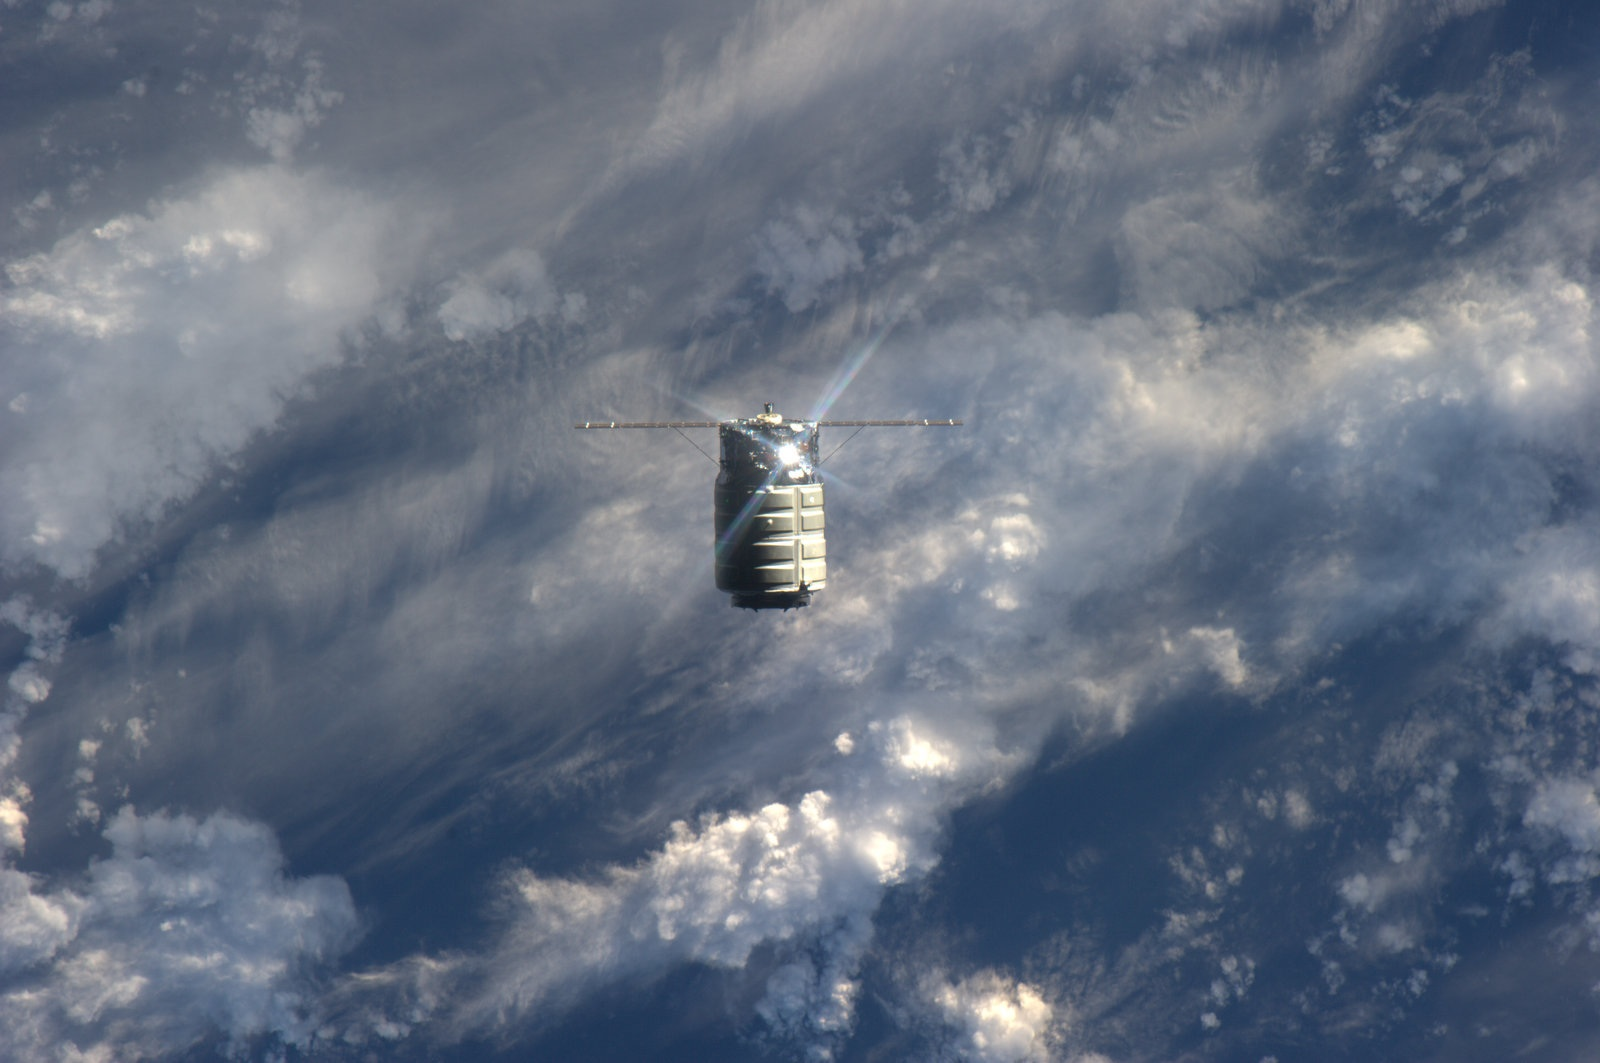 Cygnus Arrives at the Space Station | NASA